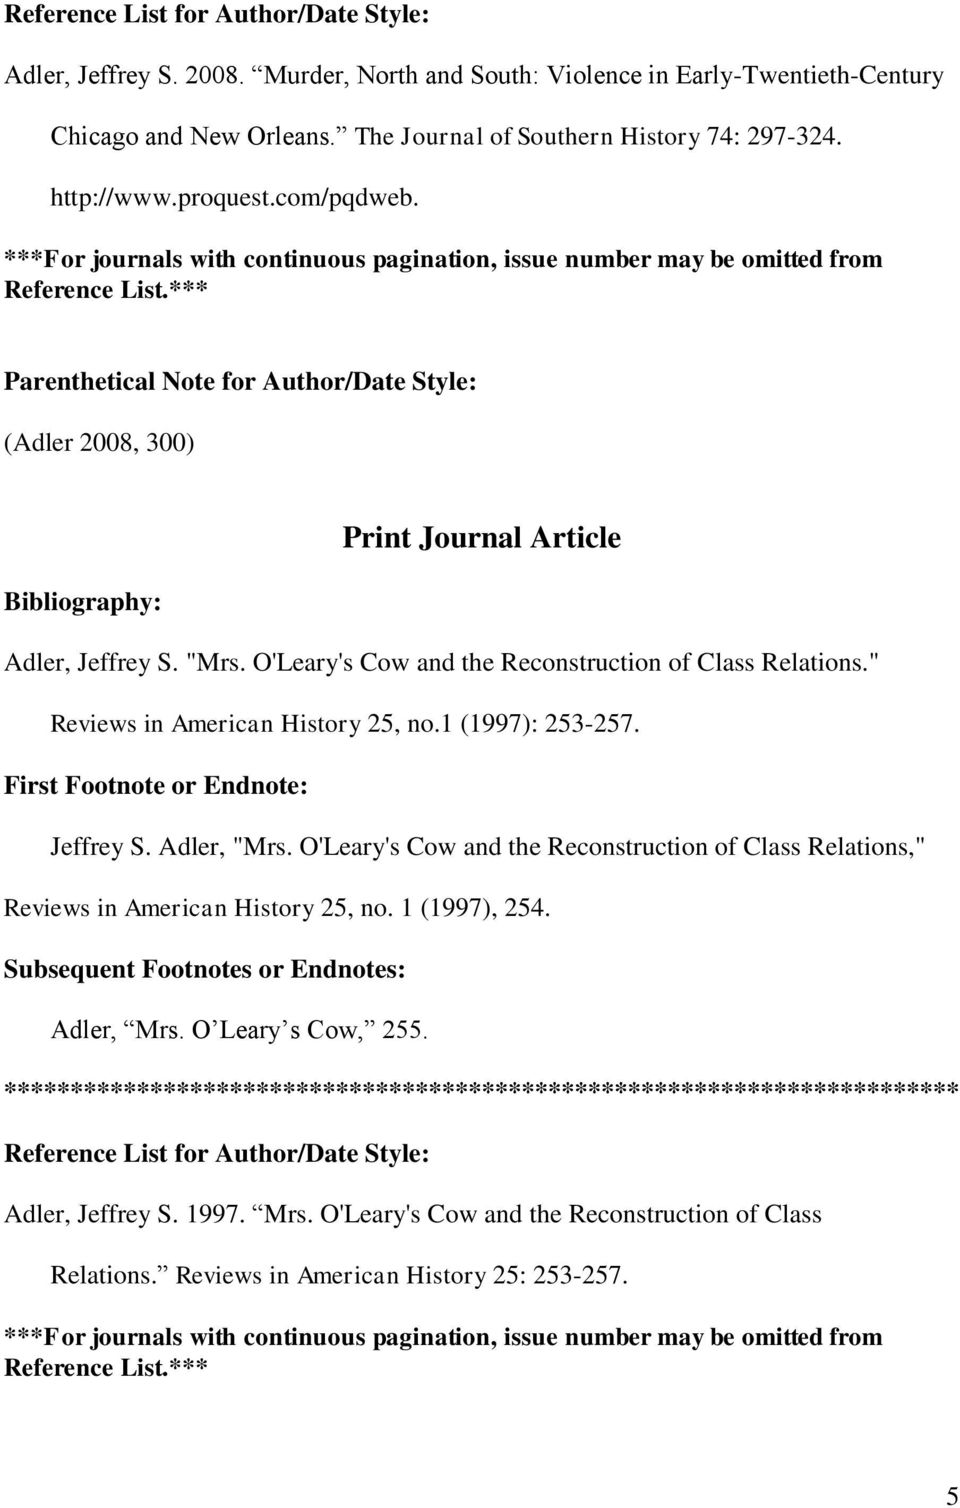 "O'Leary's Cow and the Reconstruction of Class Relations."" Reviews in American History 25, no.1 (1997): 253-257. Jeffrey S. Adler, ""Mrs."